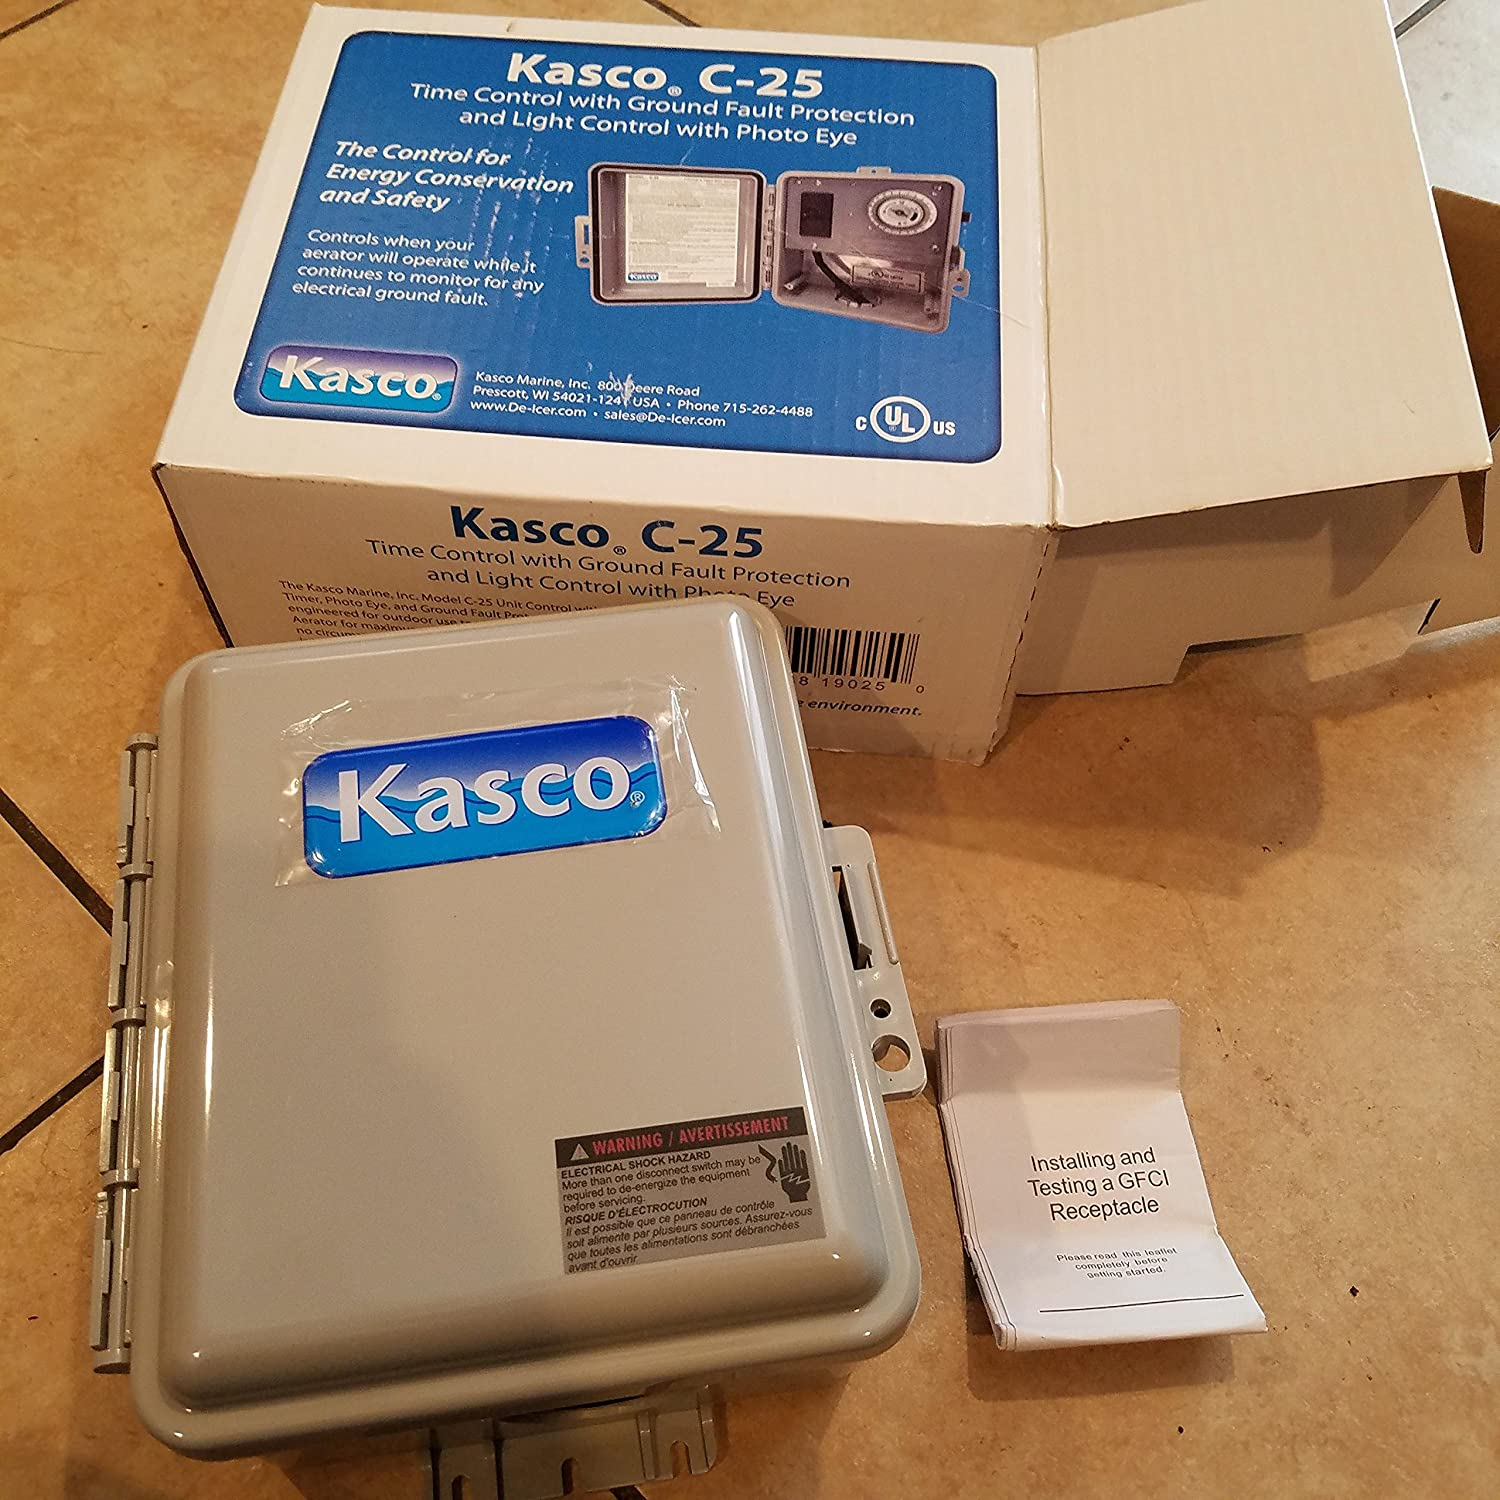 Kasco Marine C 25 120v Gfci Control Box Time Ground How To Add A With One Outlet Controlled By Switch Fault Protection Photo Eye Light